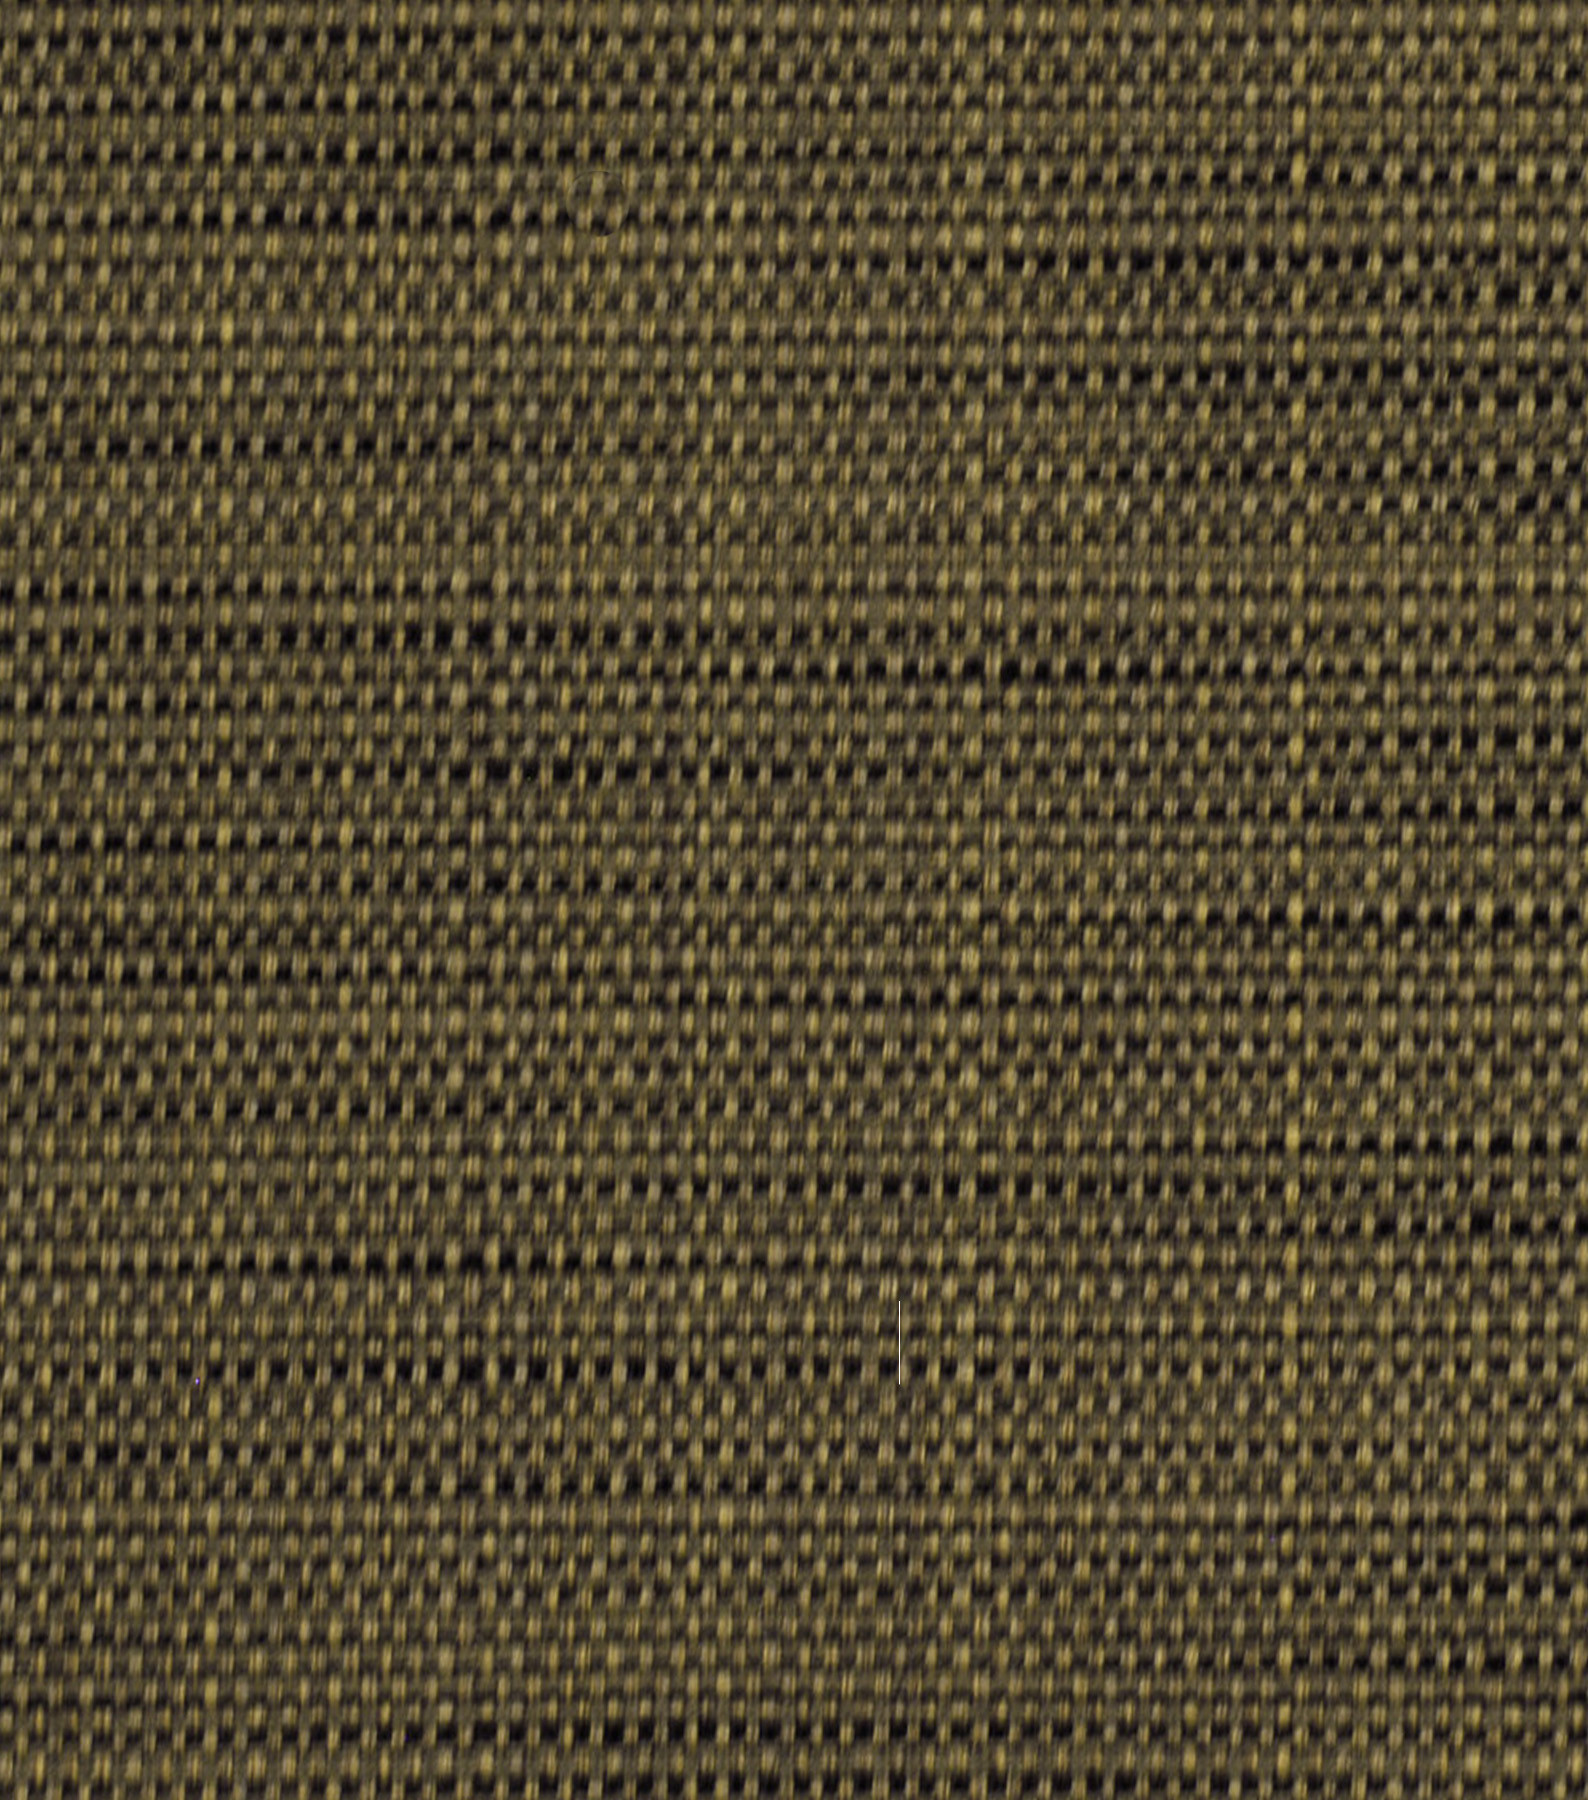 Home Decor 8\u0022x8\u0022 Fabric Swatch-Upholstery Signature Series Texturetake Sepia